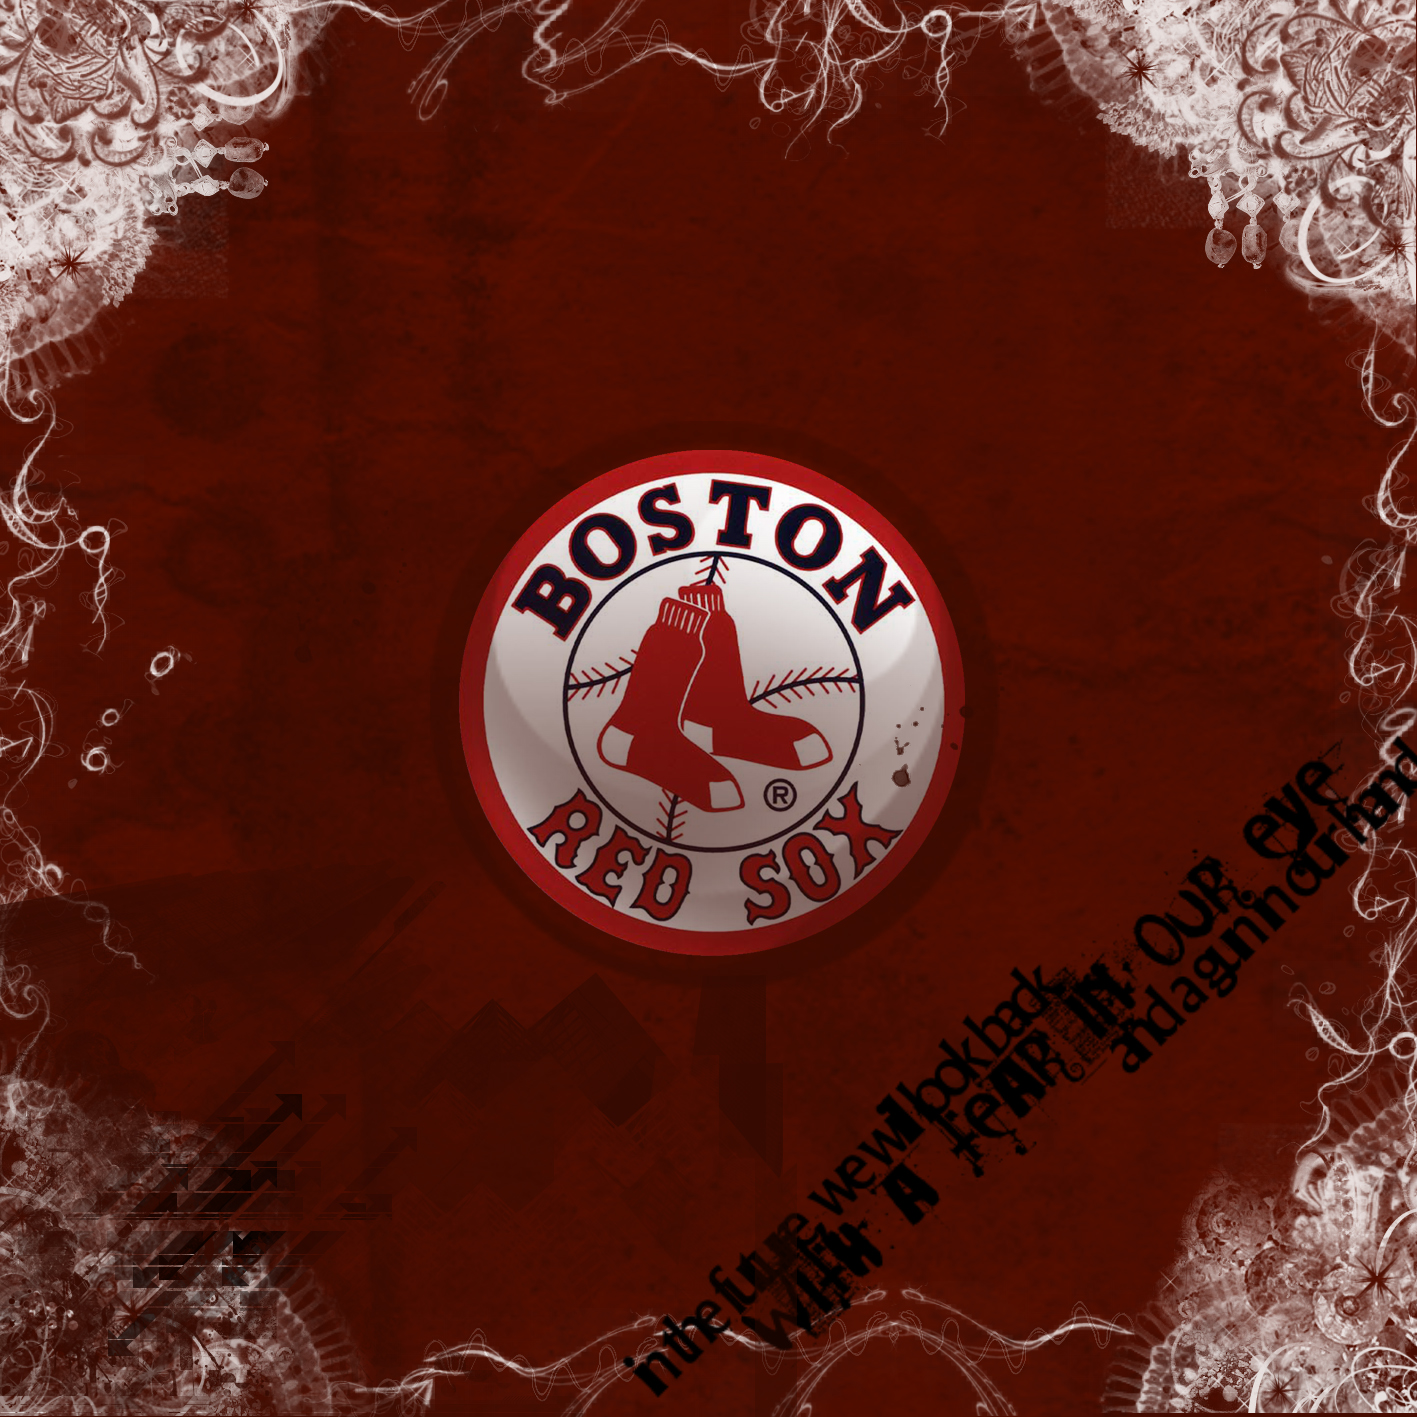 Boston Red Sox Wallpapers and Background Images   stmednet 1417x1417